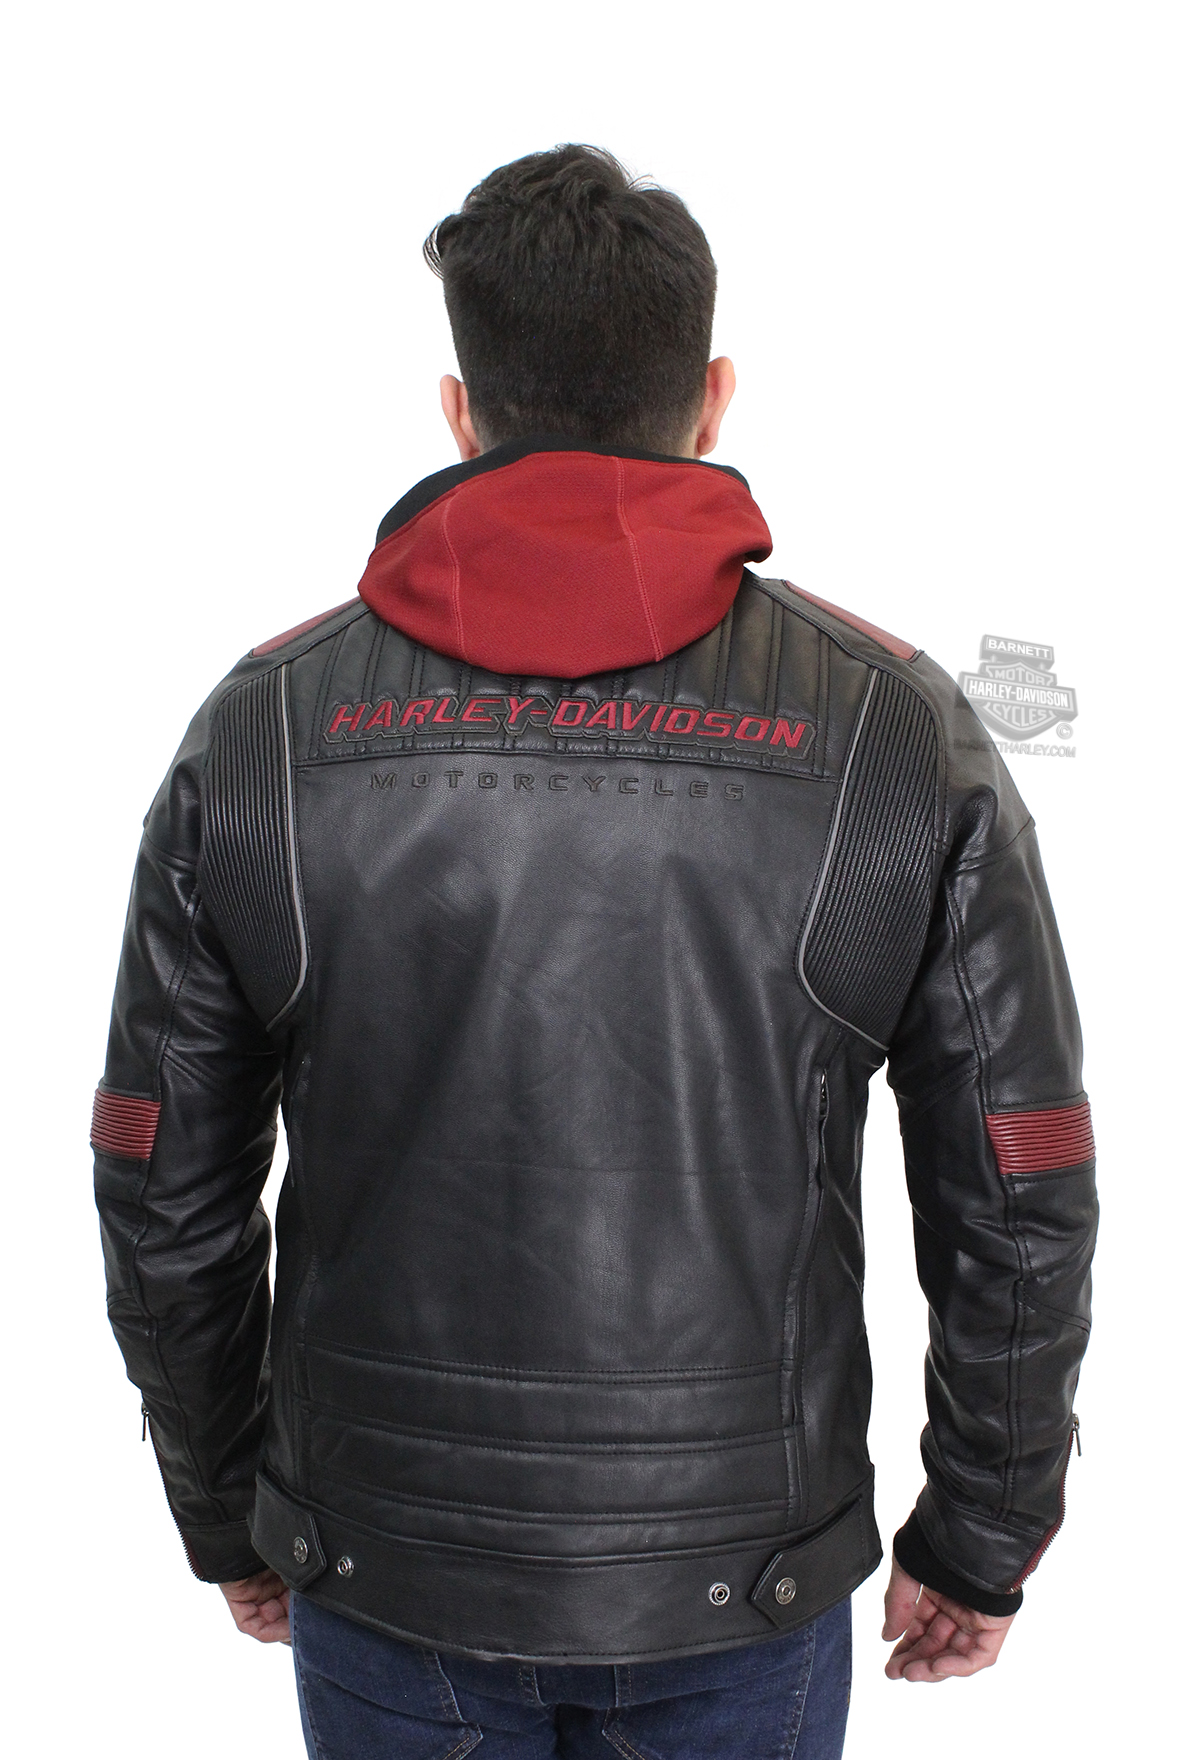 Harley Davidson 174 Mens Donhill H D 3 In 1 Midweight Black